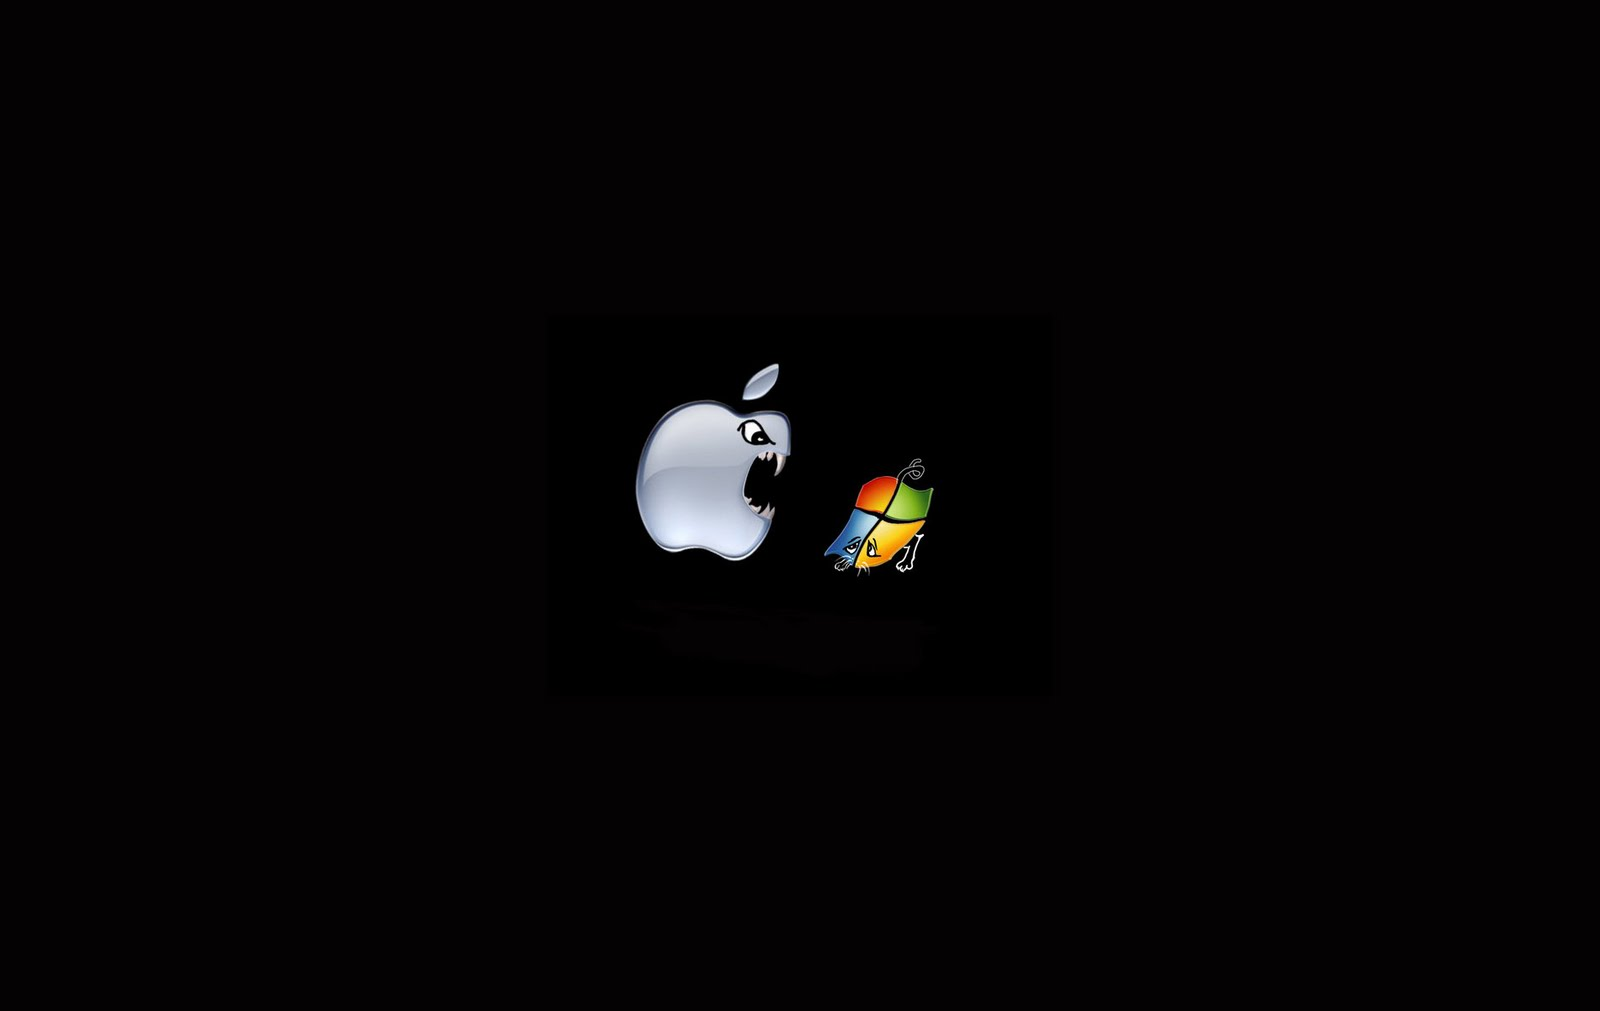 Very Funny Hd Backgrounds: Funny Hd Wallpapers For Mac